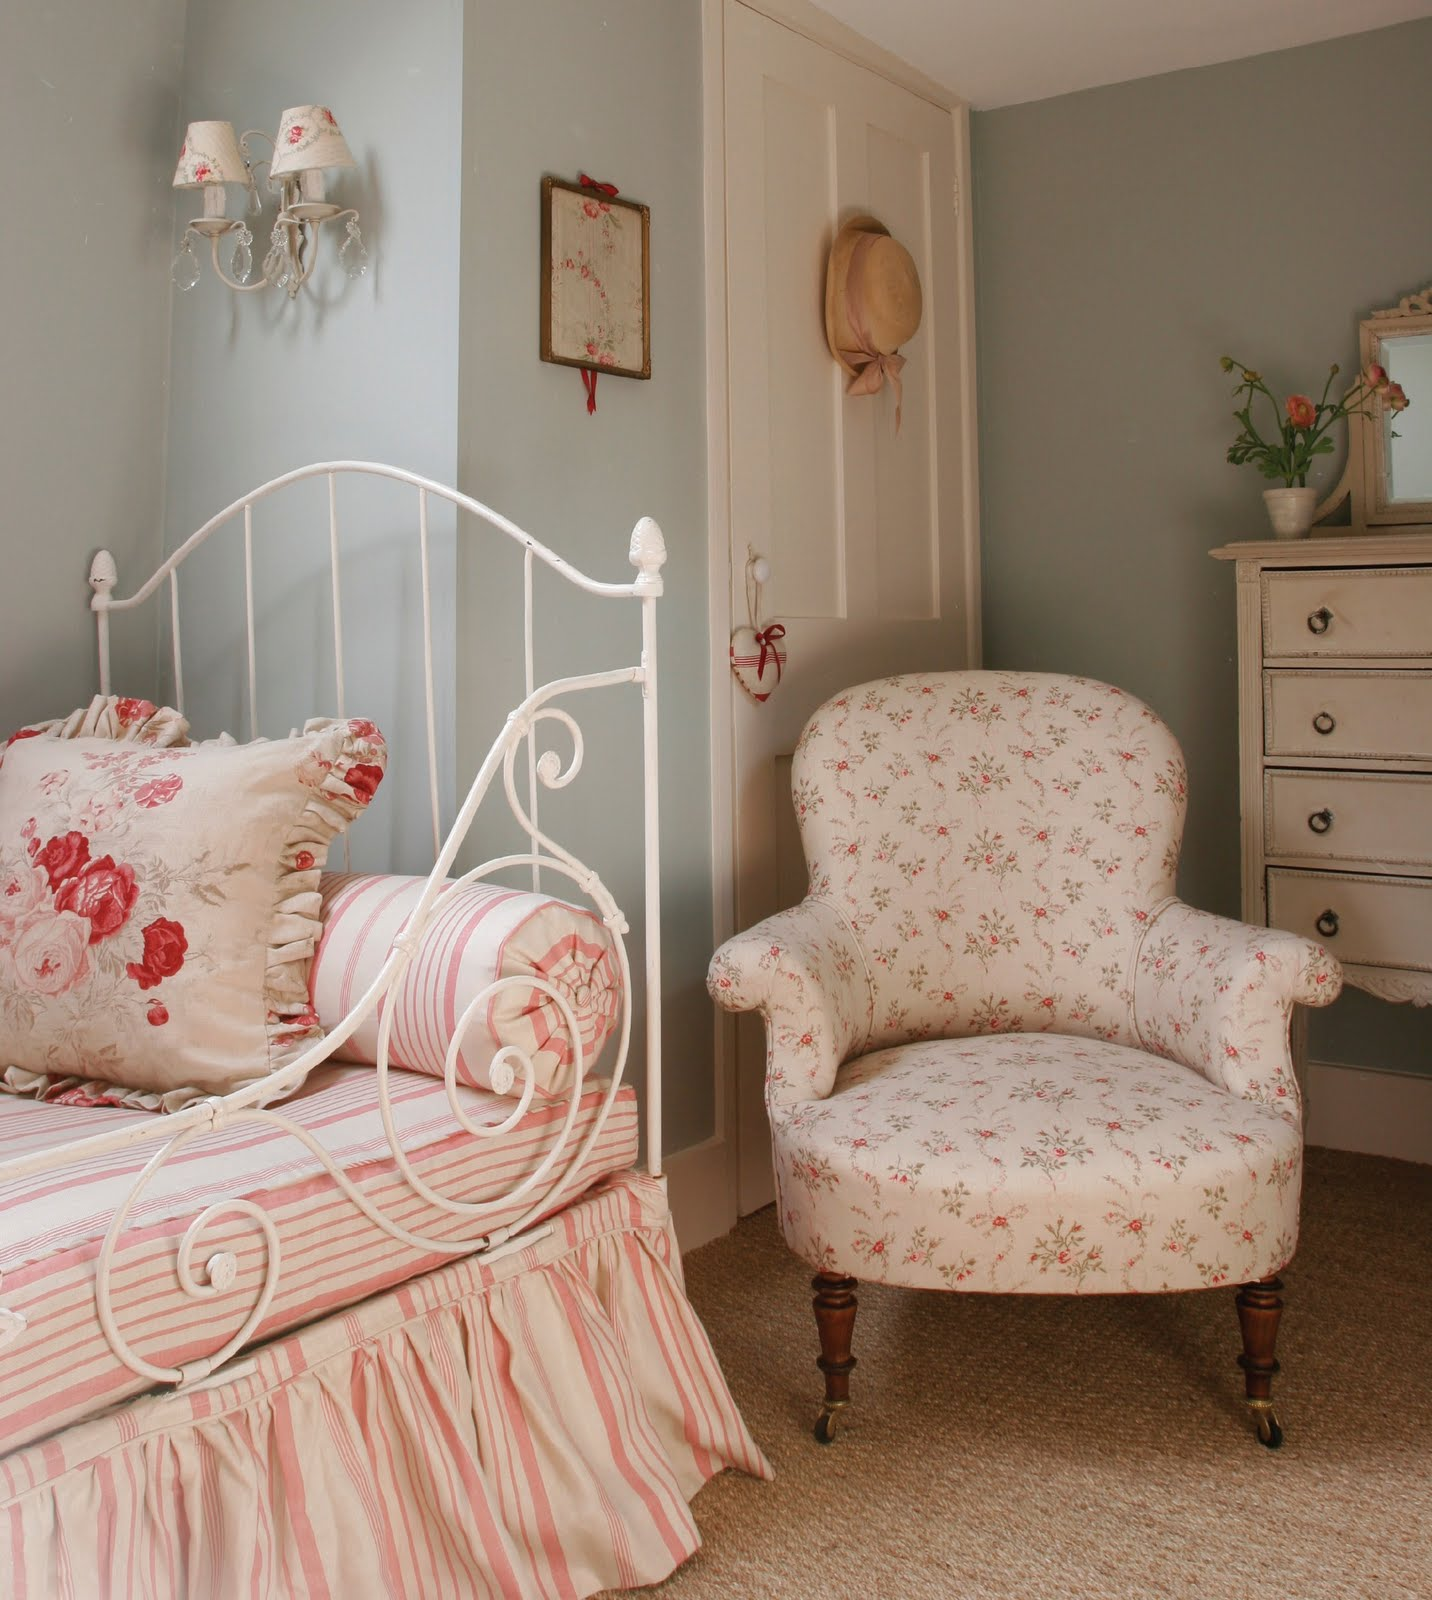 Apple blossom barn kate forman just gorgeous - Cottage style bedrooms pictures ...